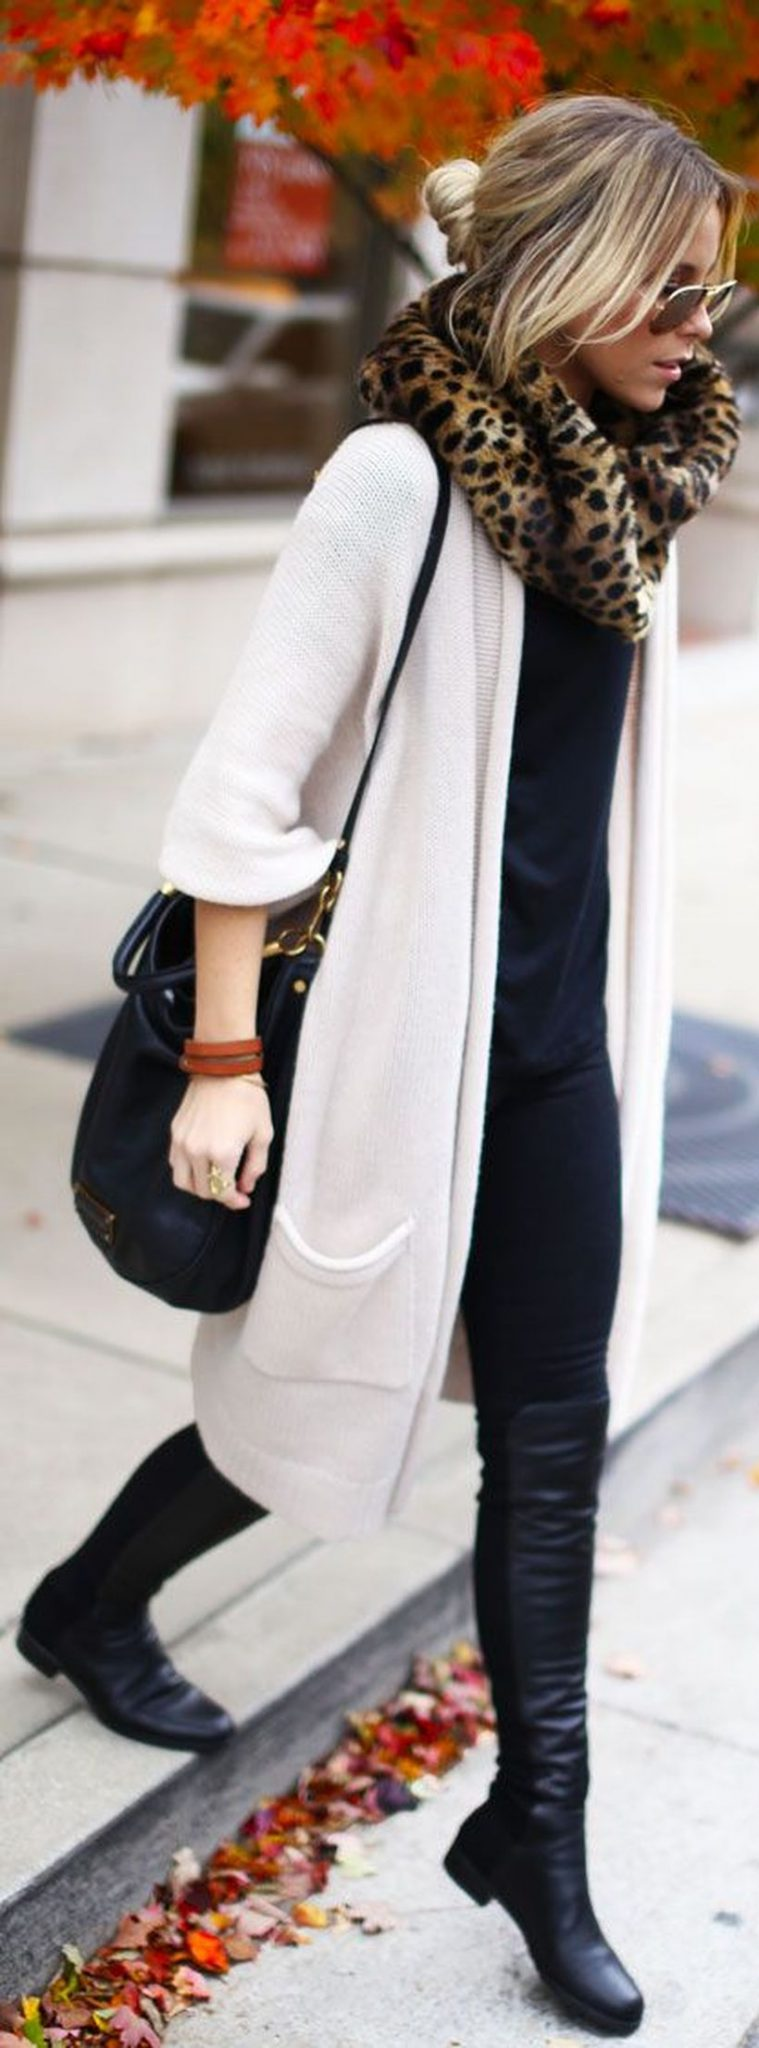 Tips how to wear cardigans and leggings in this fall 81